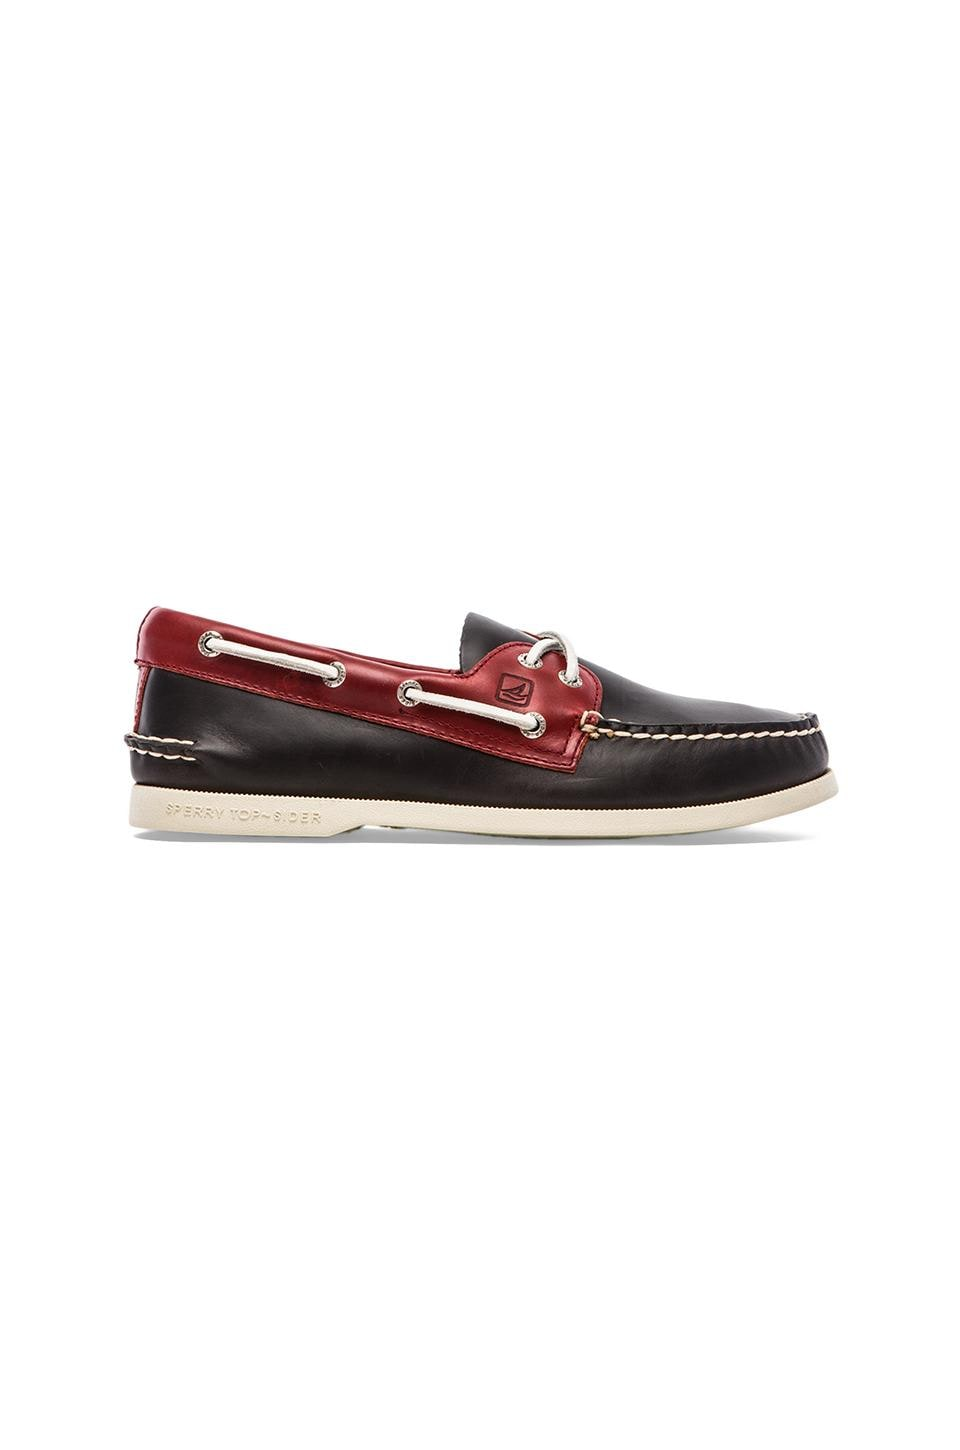 Sperry Top-Sider A/O 2-Eye Cyclone in Dark Grey & Red